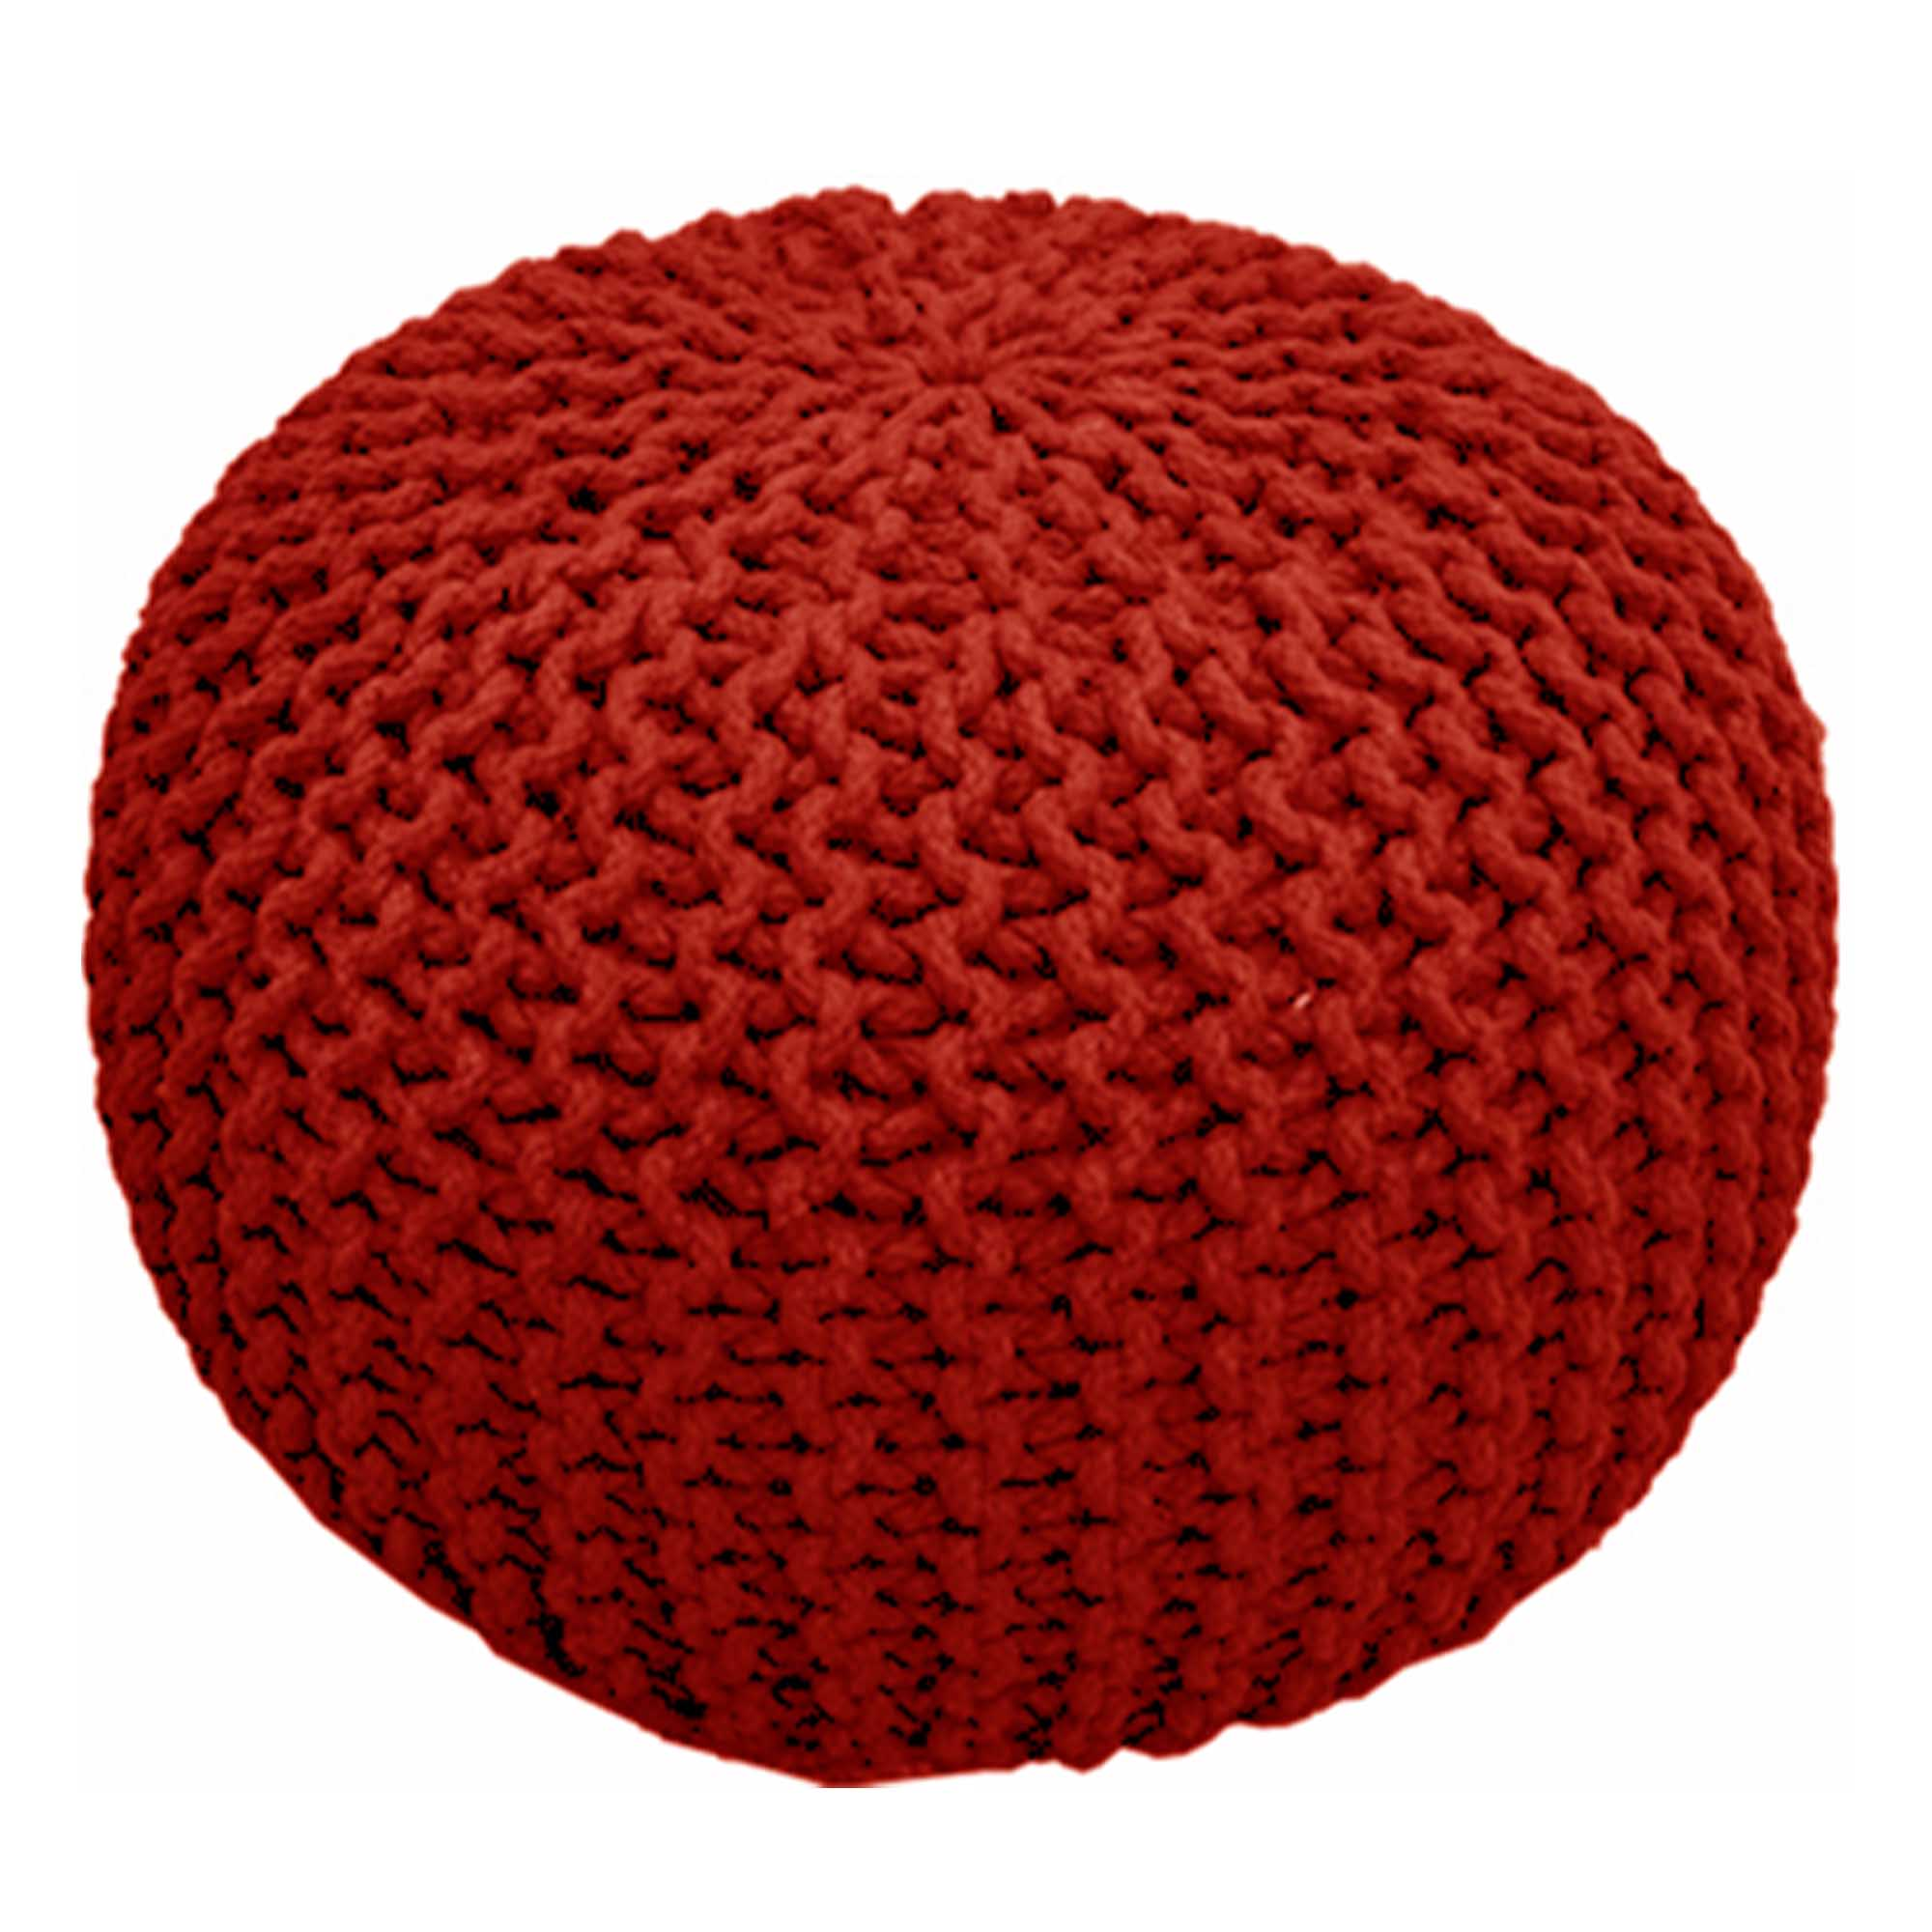 Chunky Knit Pouf - Red - CAM Living